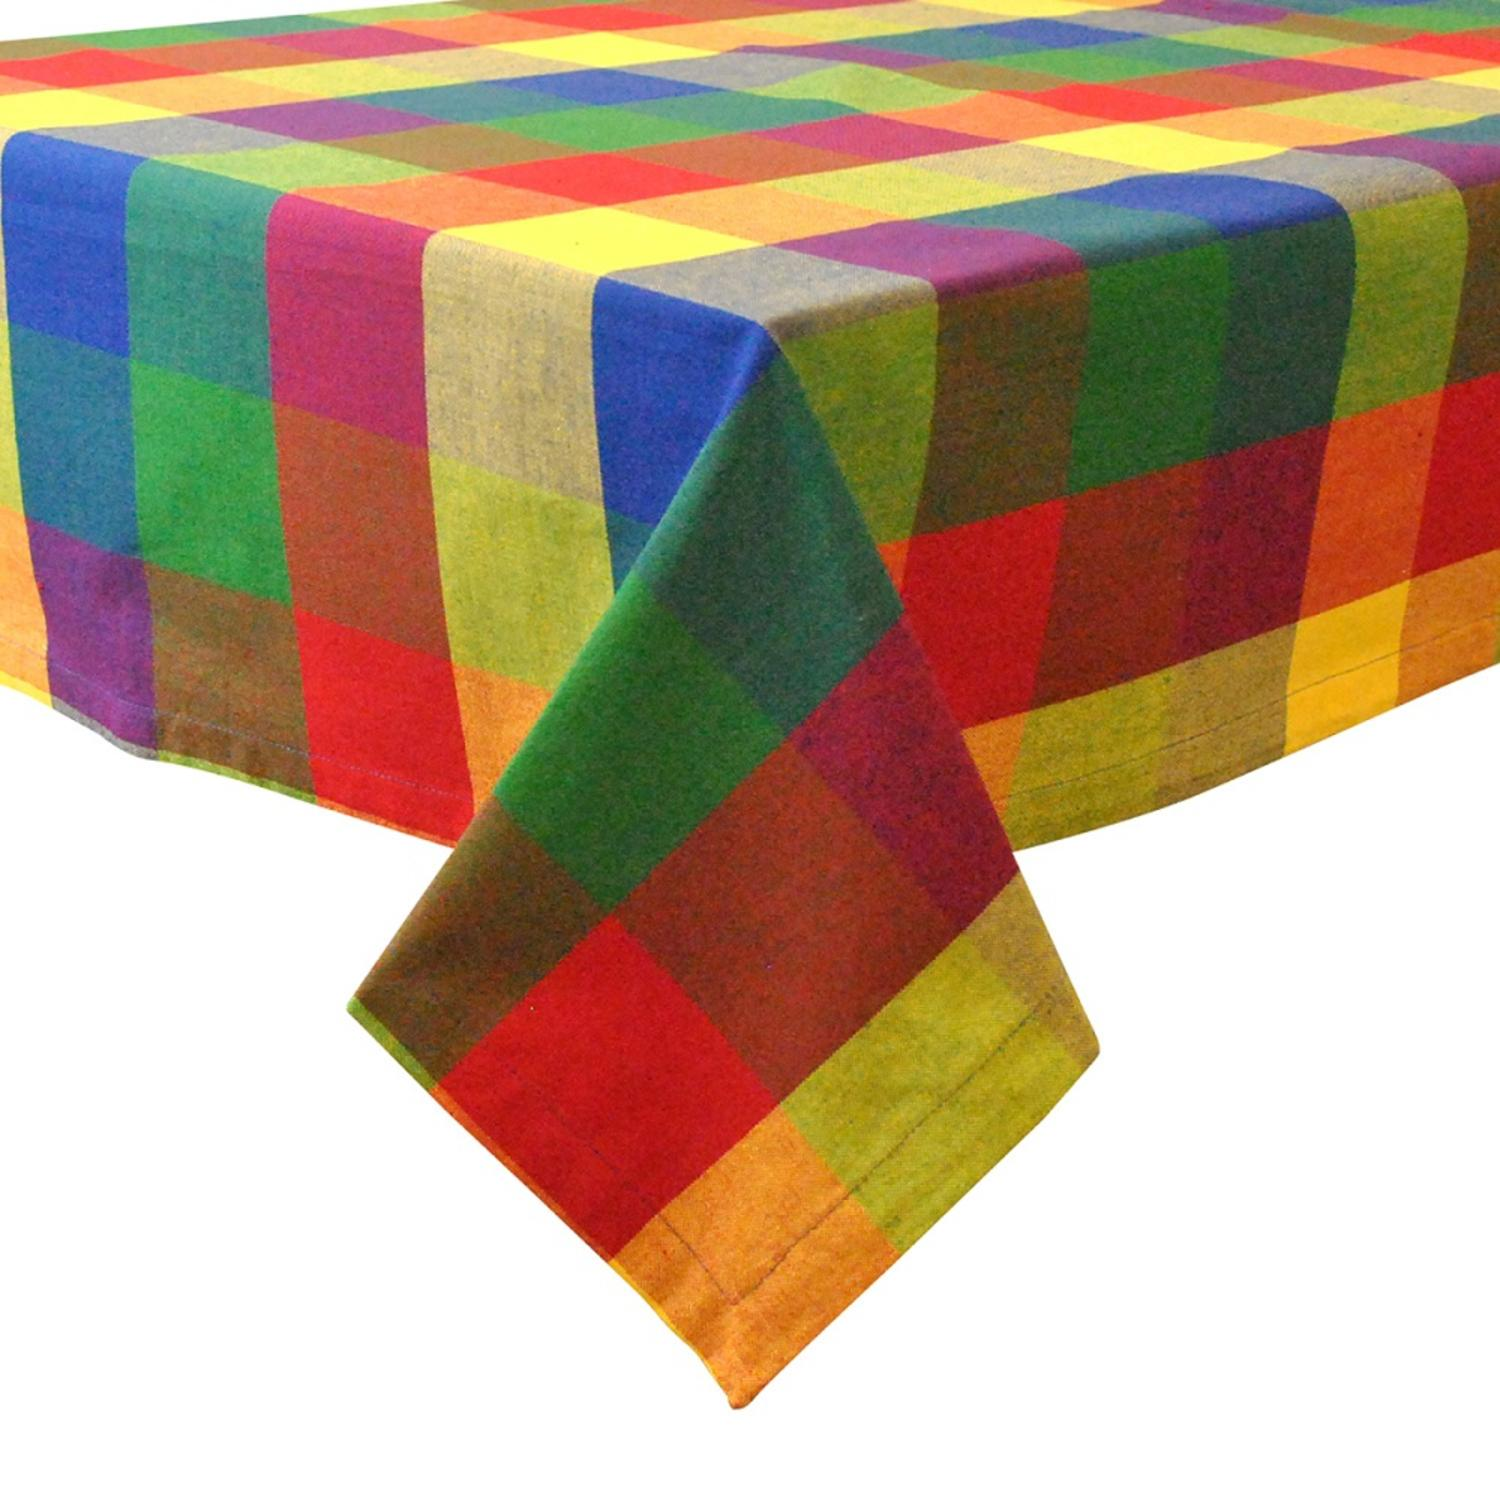 "Vivid Summers Colorful Checkered Square Table Cloth 52"" x 52"